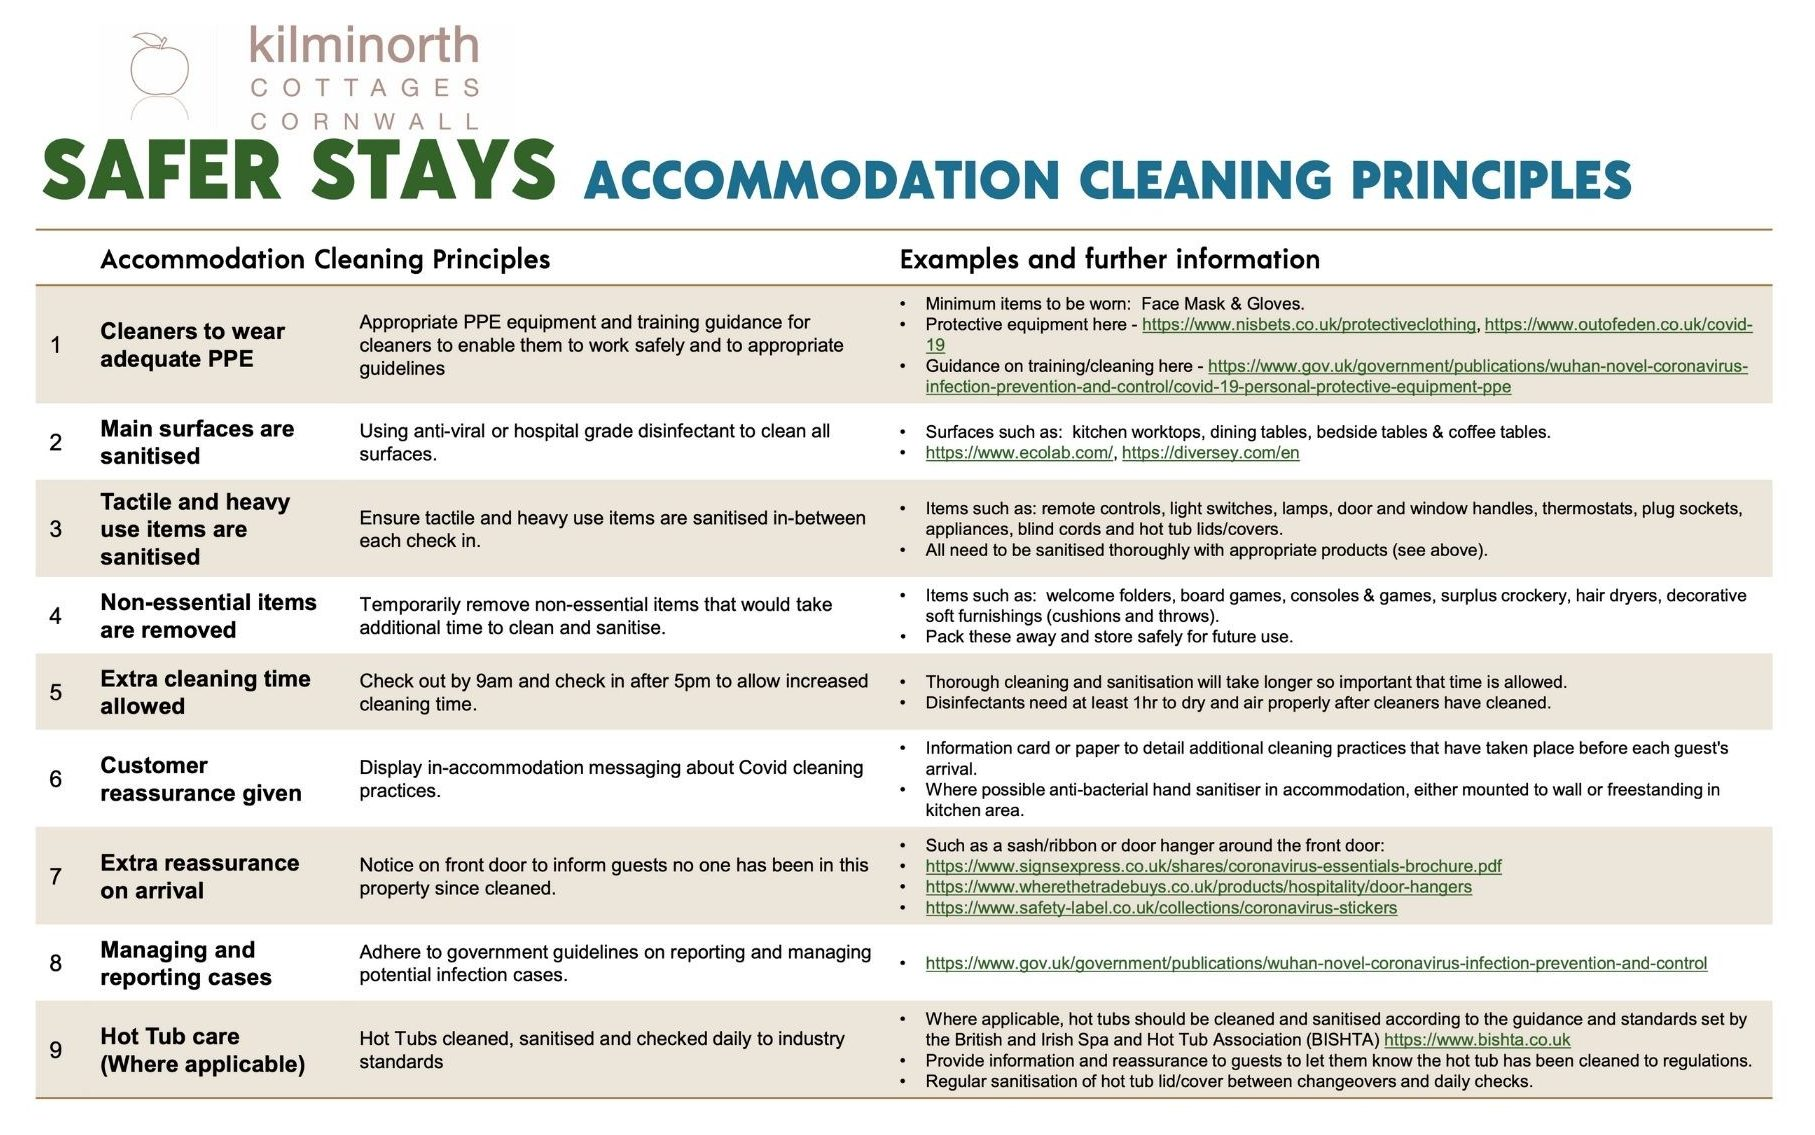 Accommodation cleaning principles